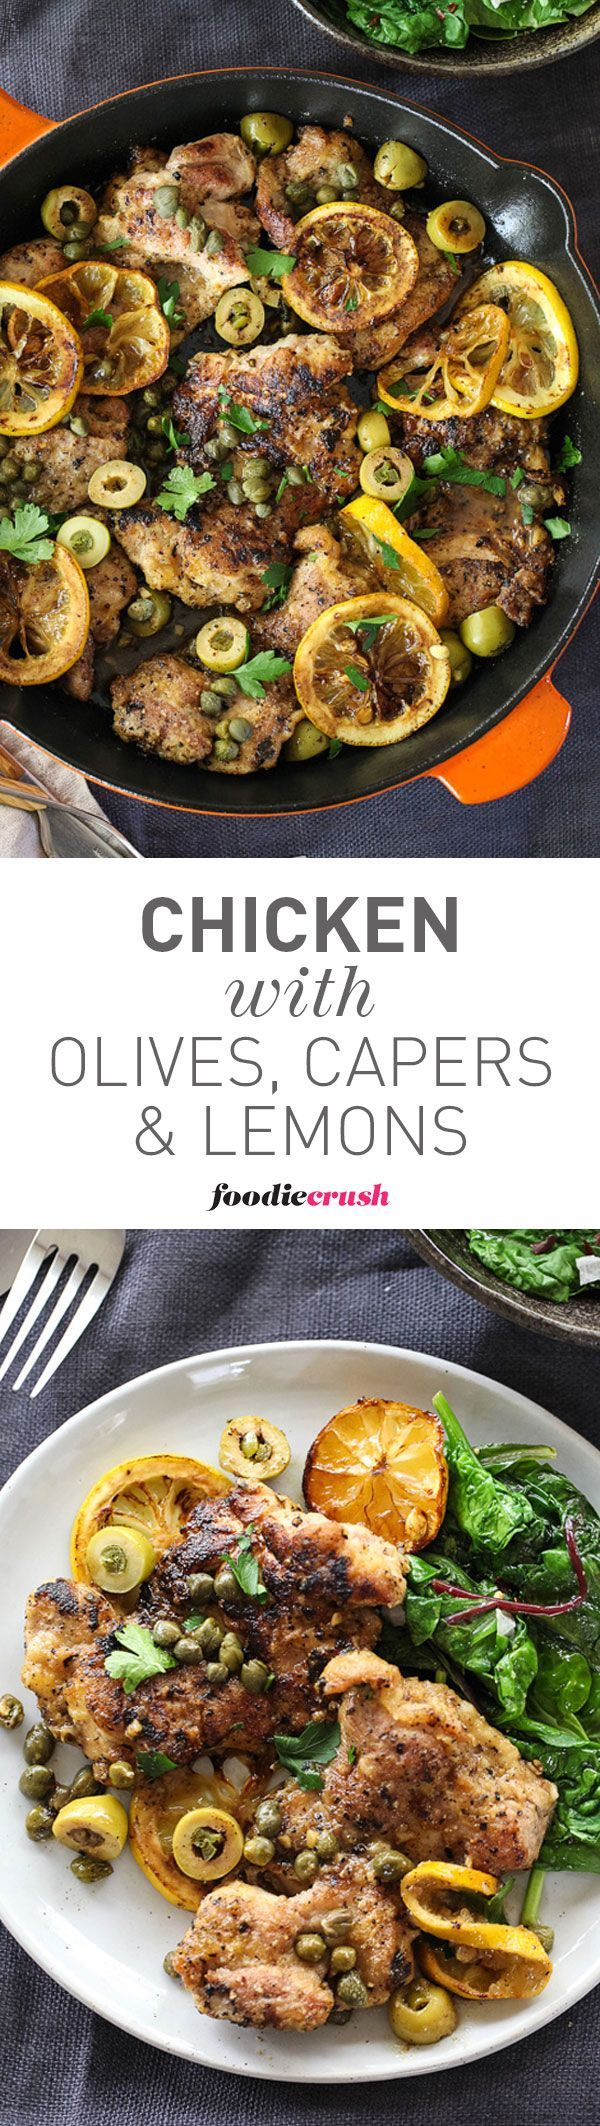 1000+ images about The Best Chicken Recipes on Pinterest ...